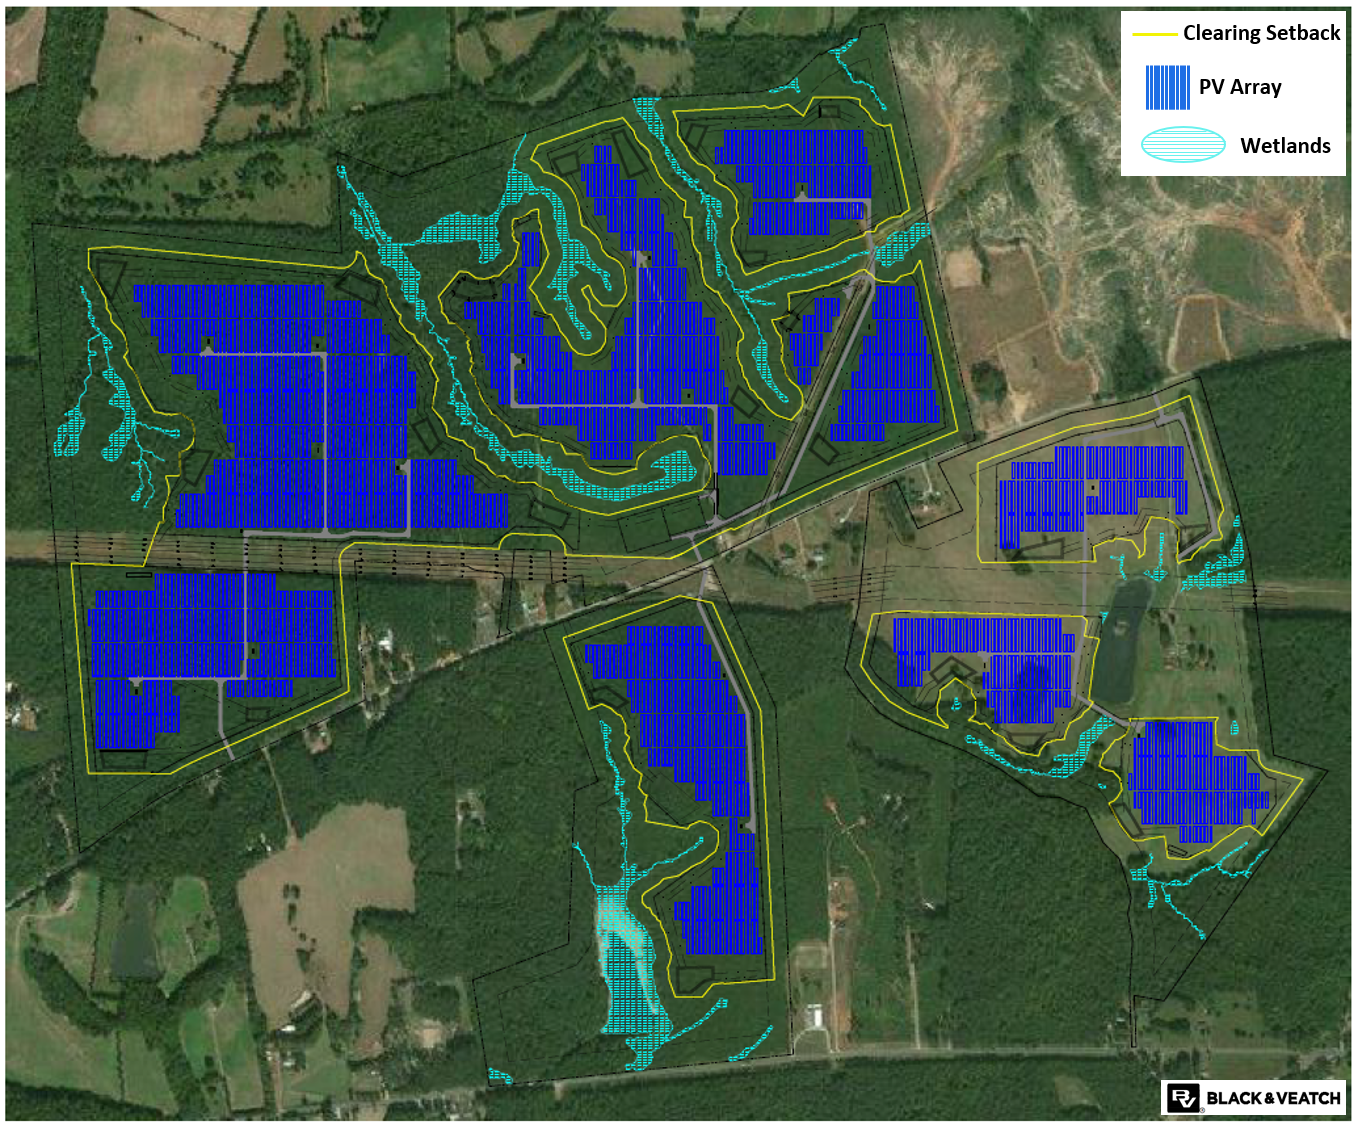 Black and Veatch case study near site shading loss